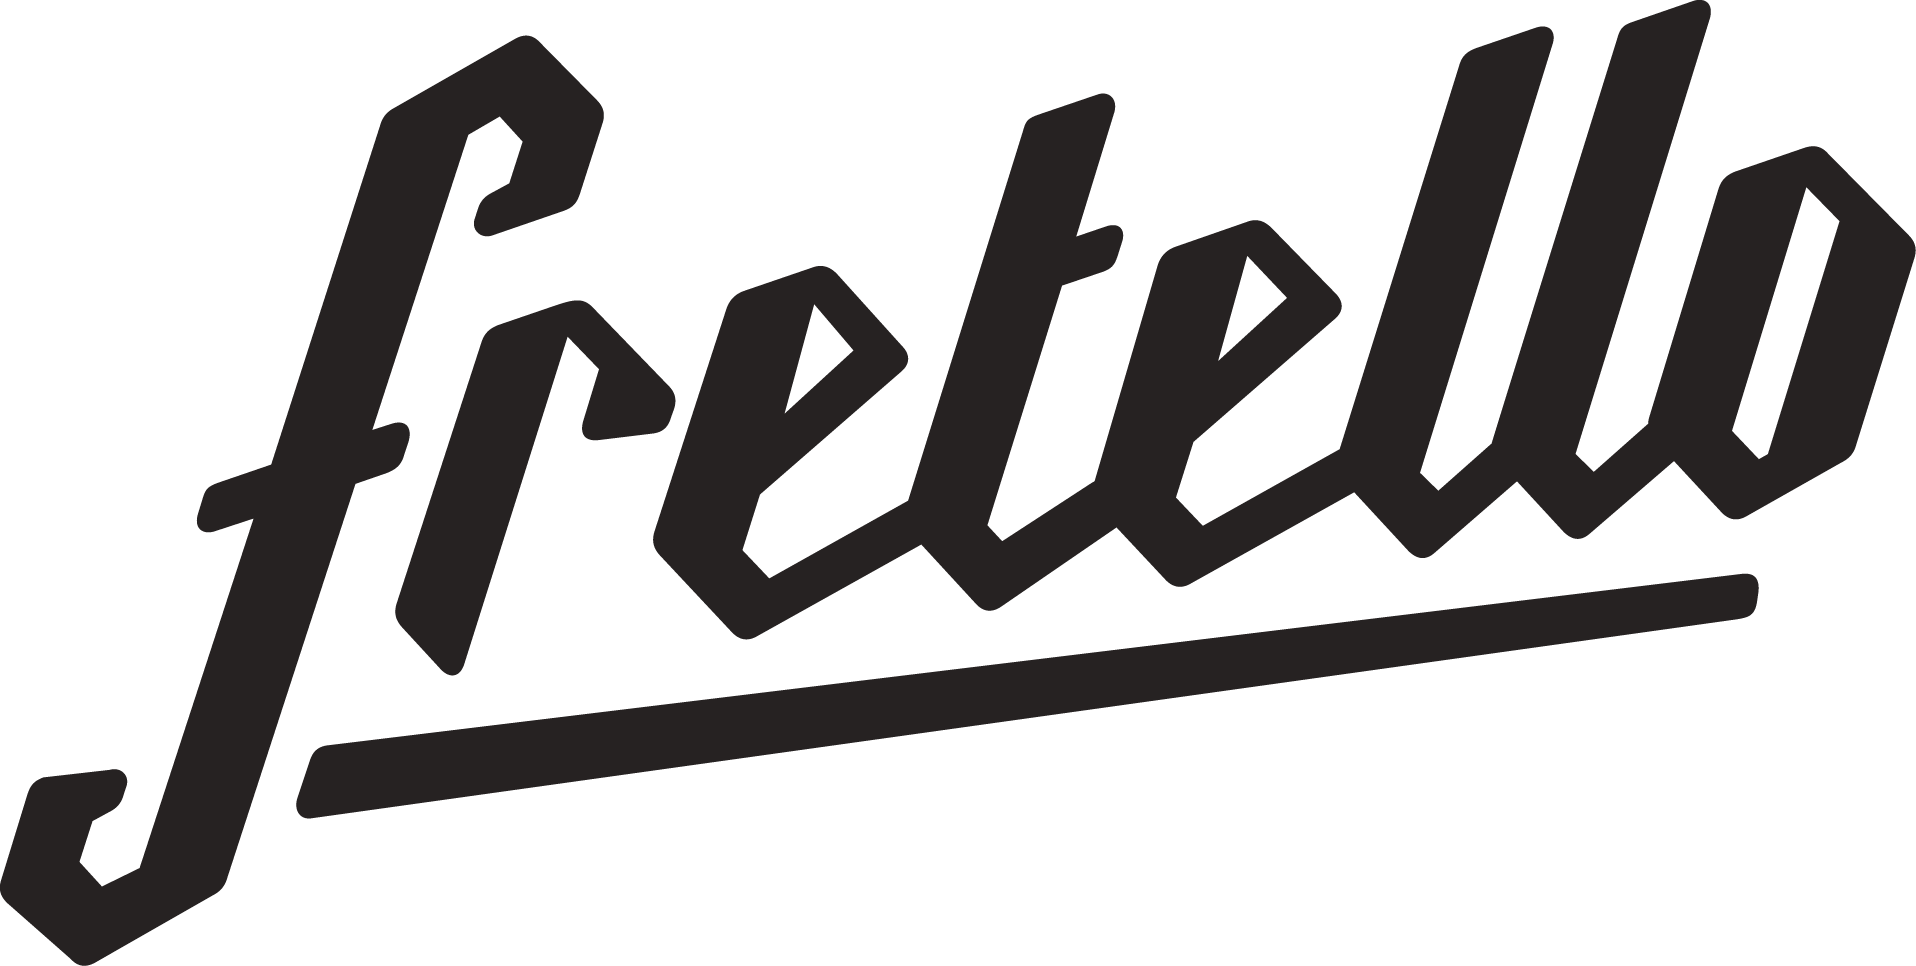 fretello logo